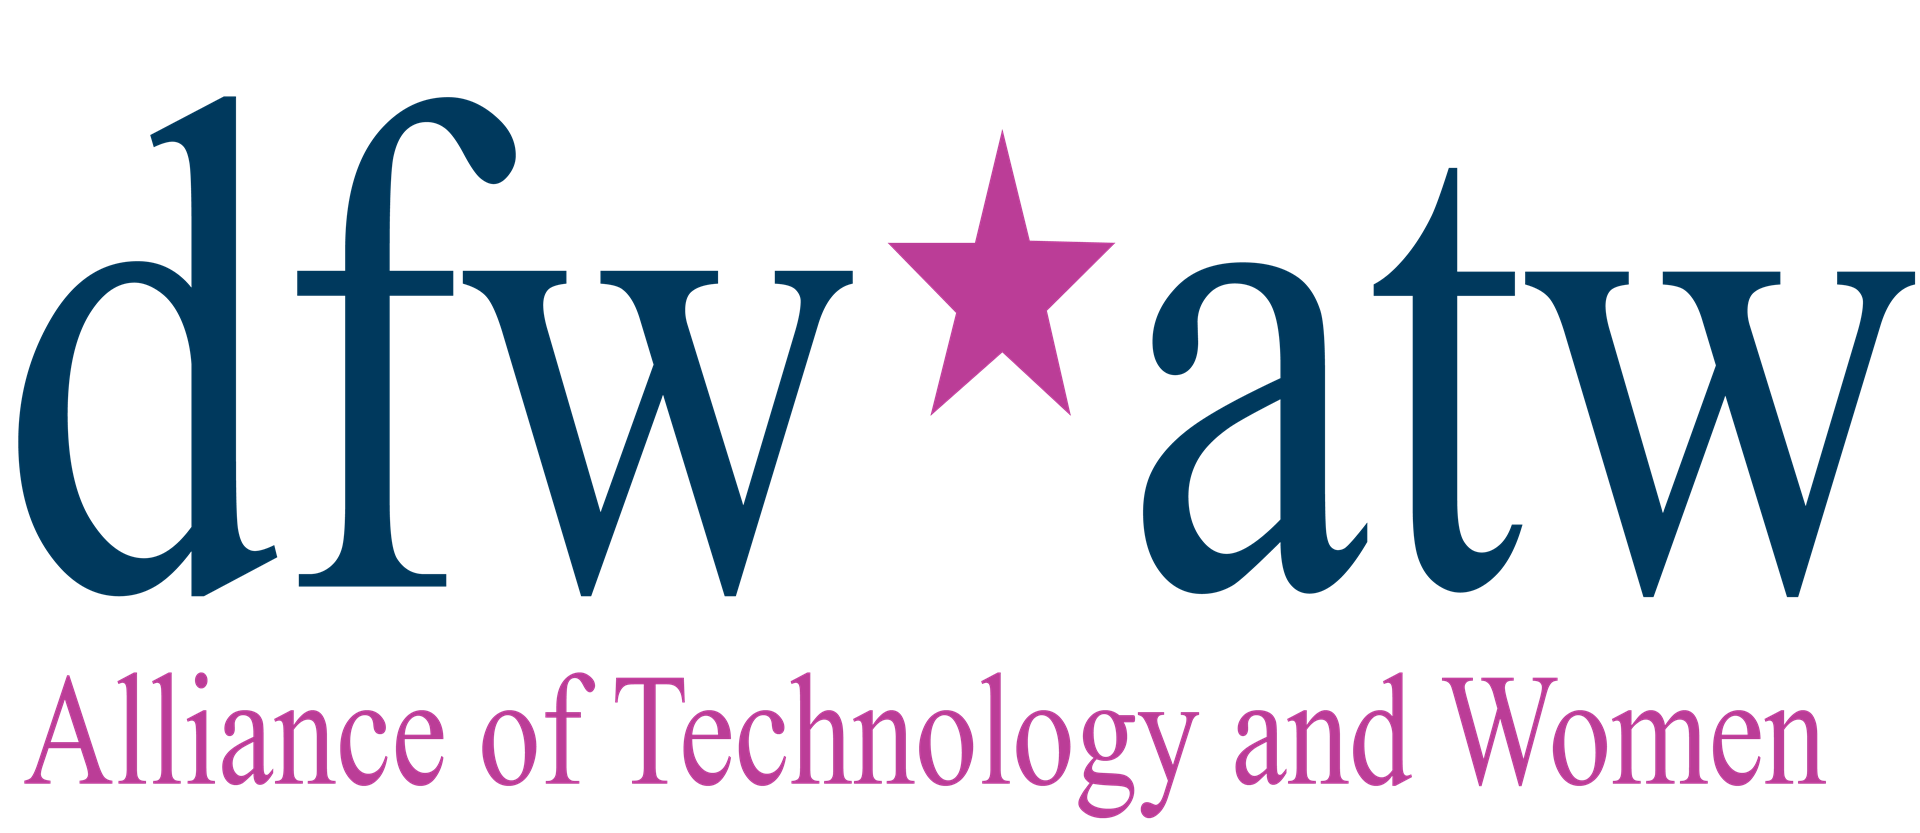 Alliance of Technology and Women - Developing Women Leaders in Technology